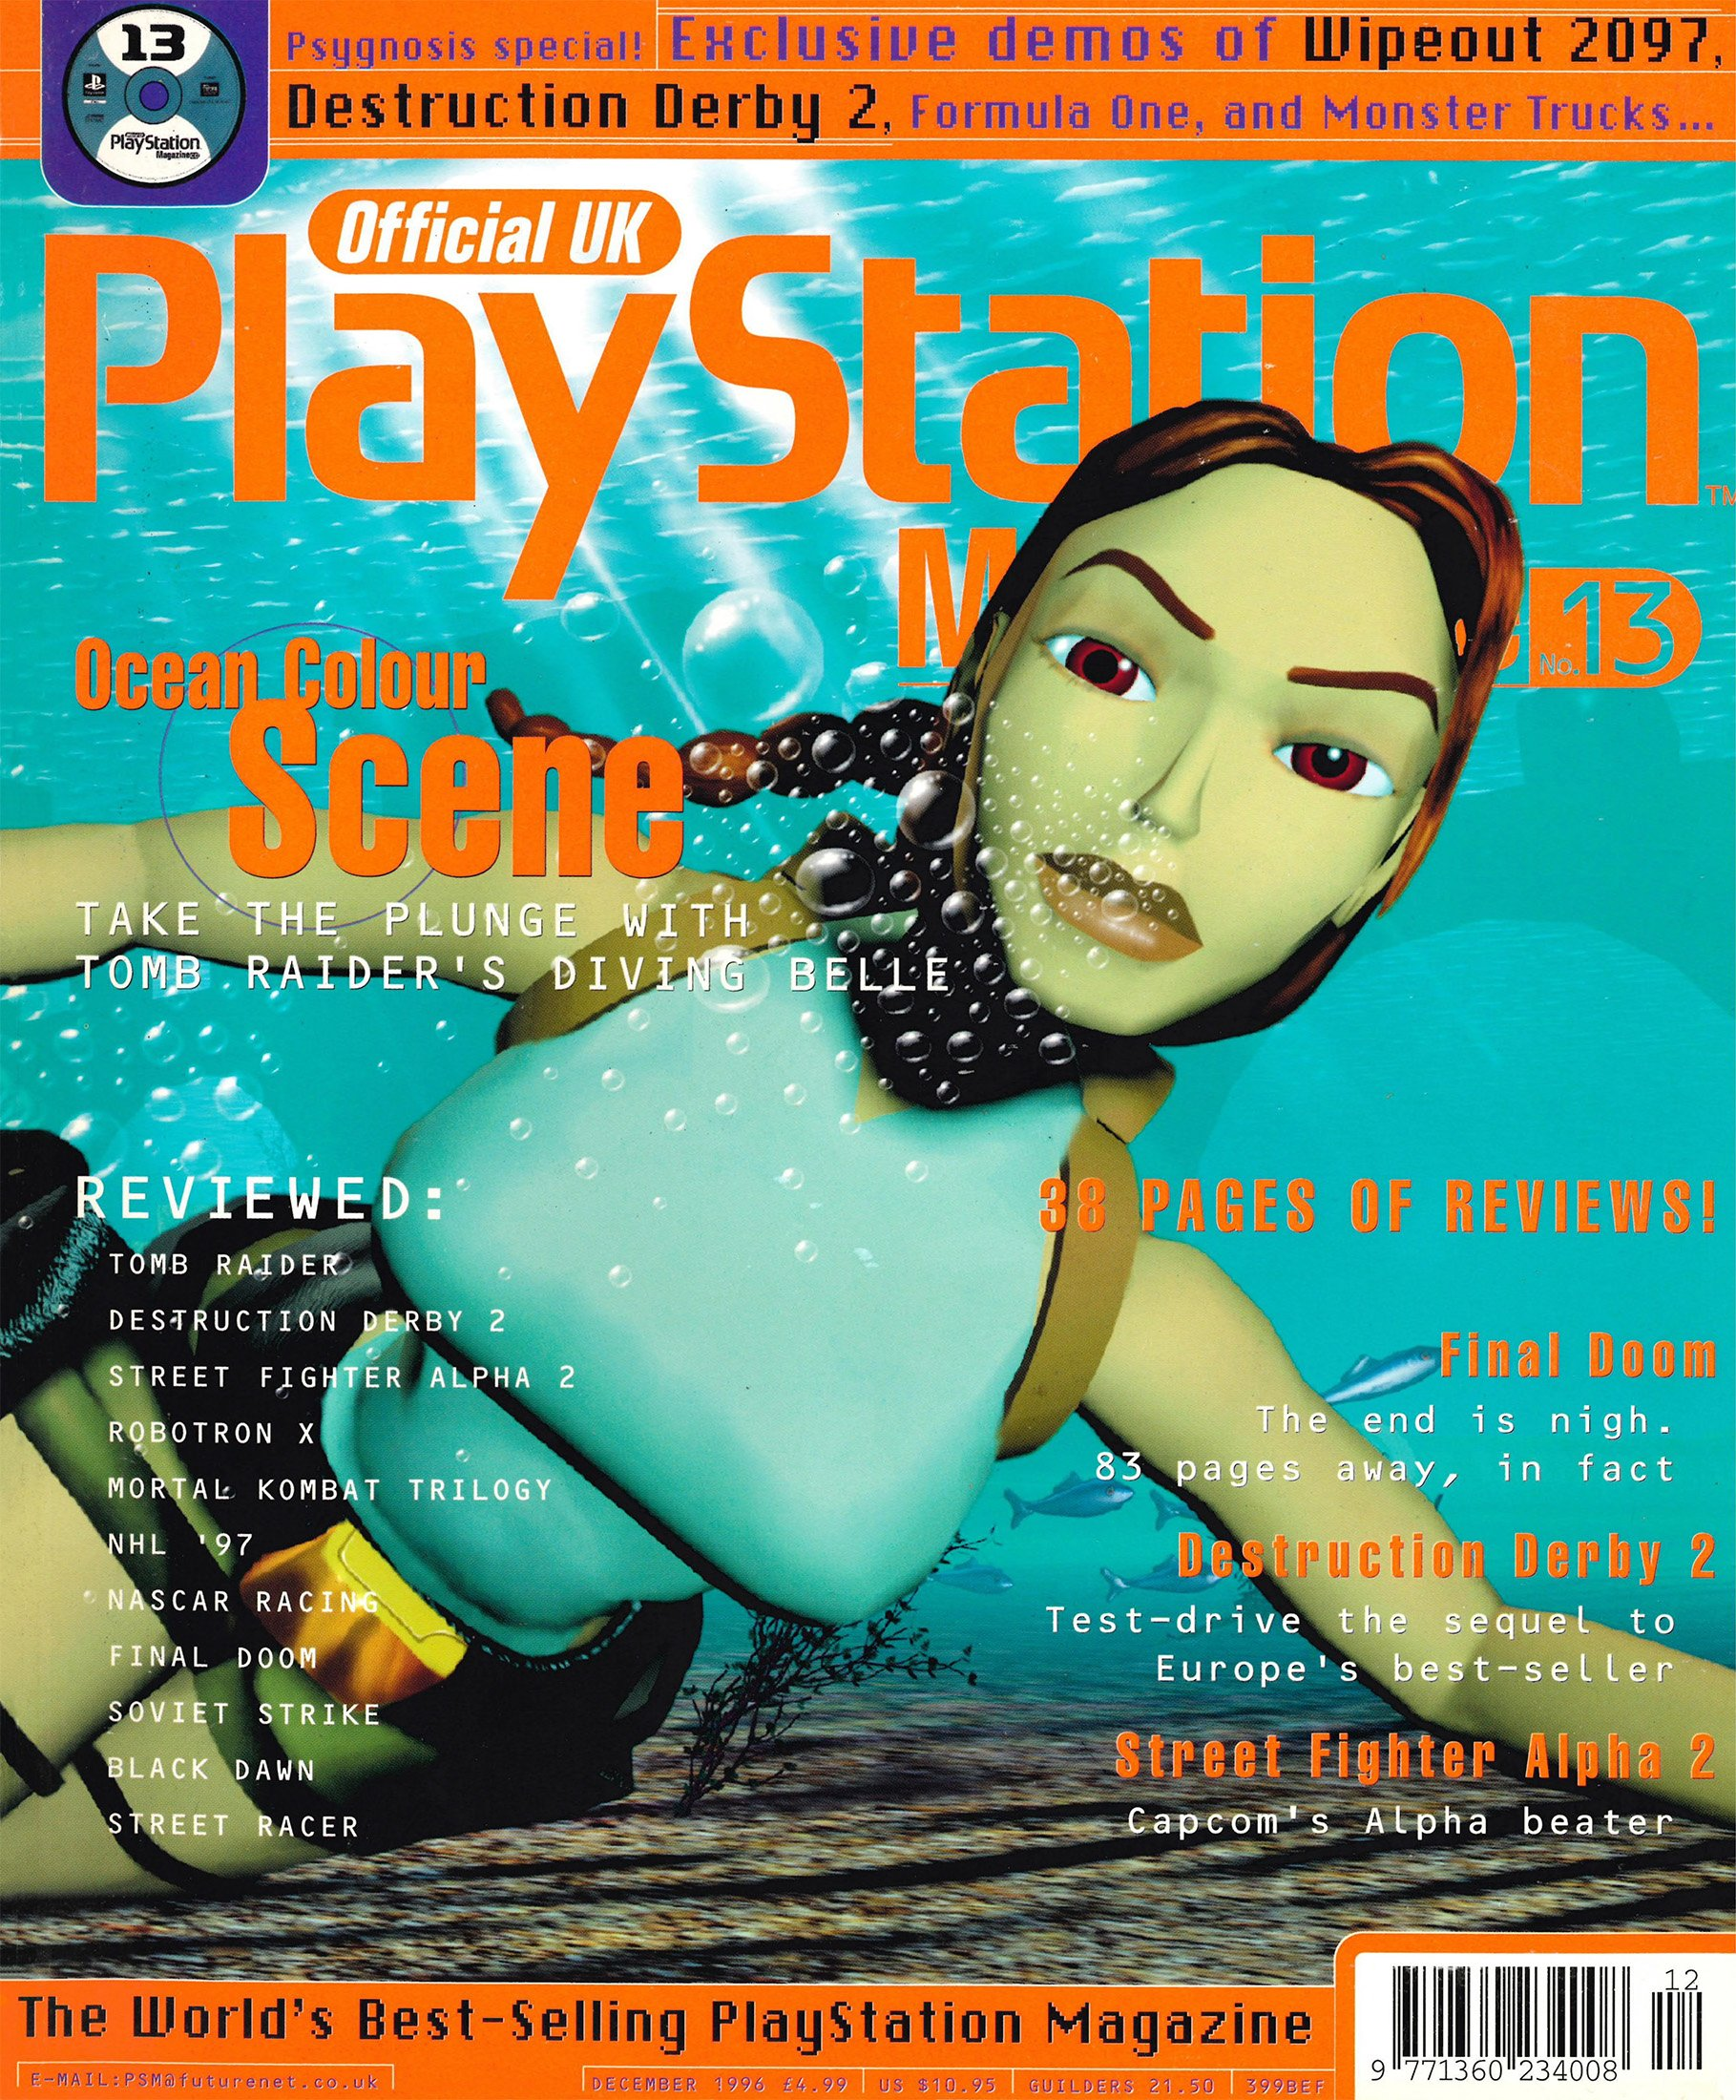 Official UK PlayStation Magazine Issue 013 (December 1996)